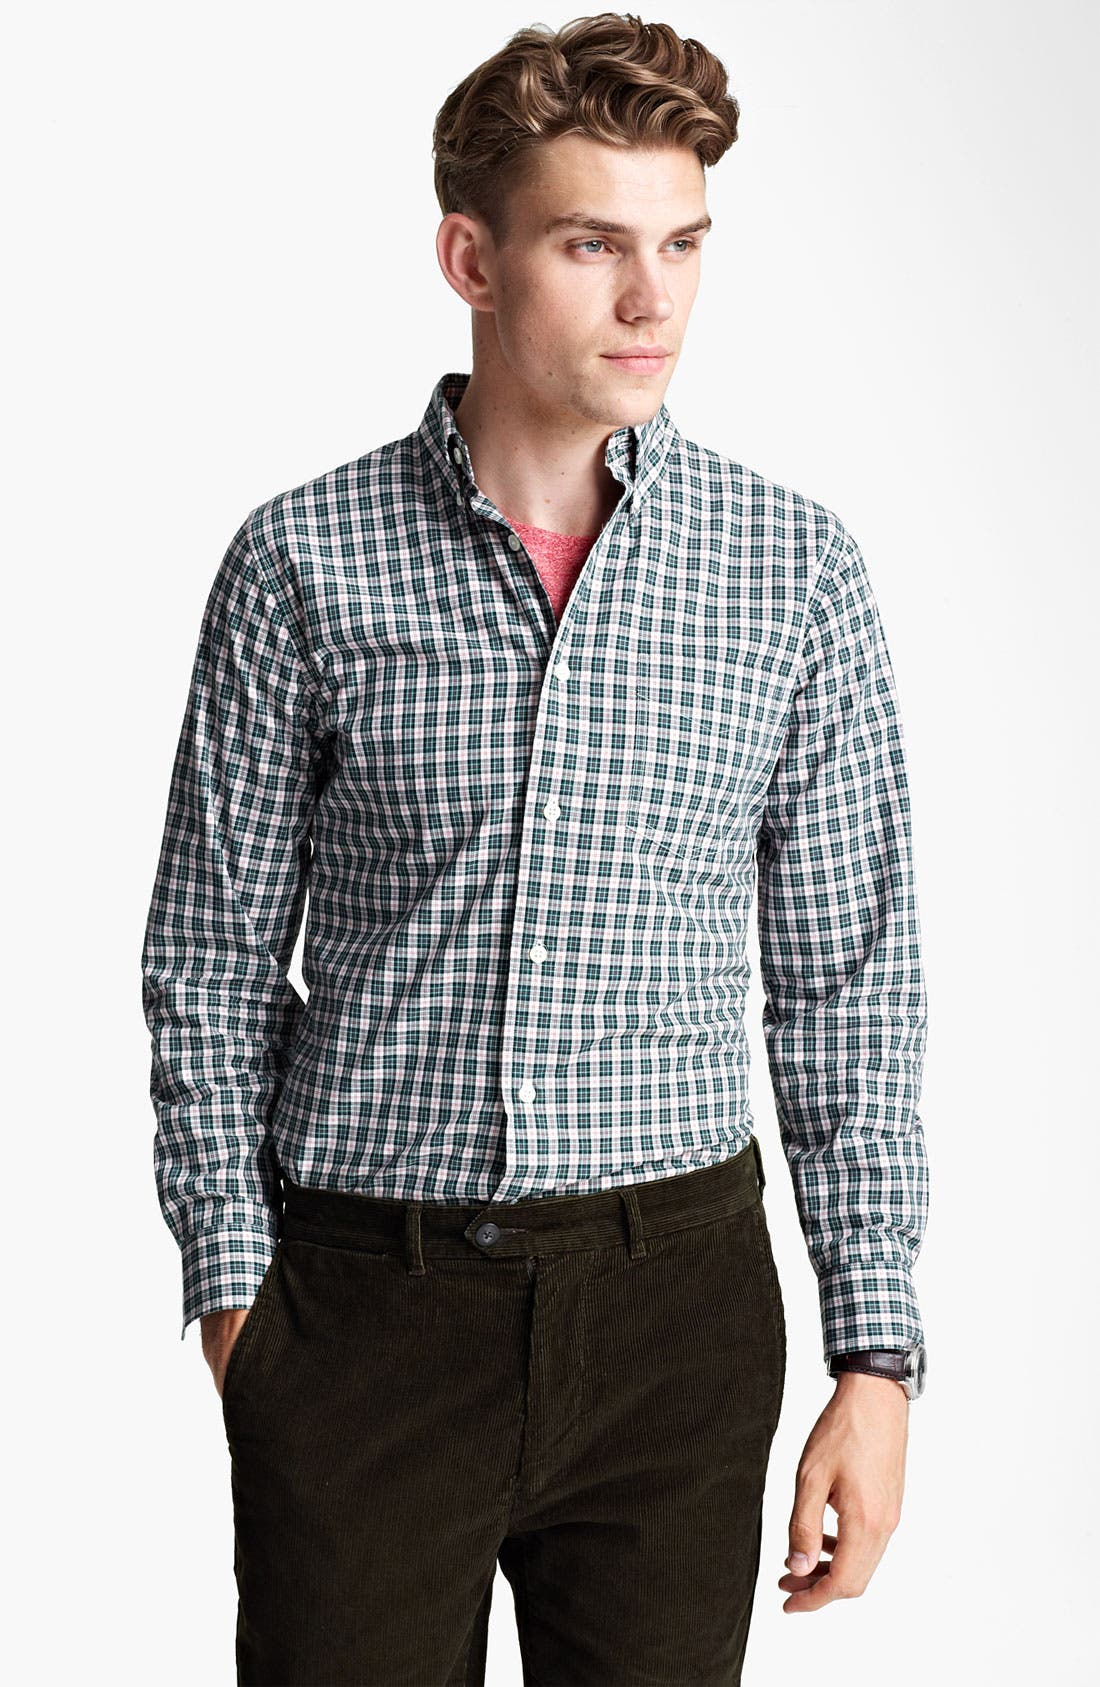 Alternate Image 1 Selected - Jack Spade 'Snyder' Check Woven Shirt